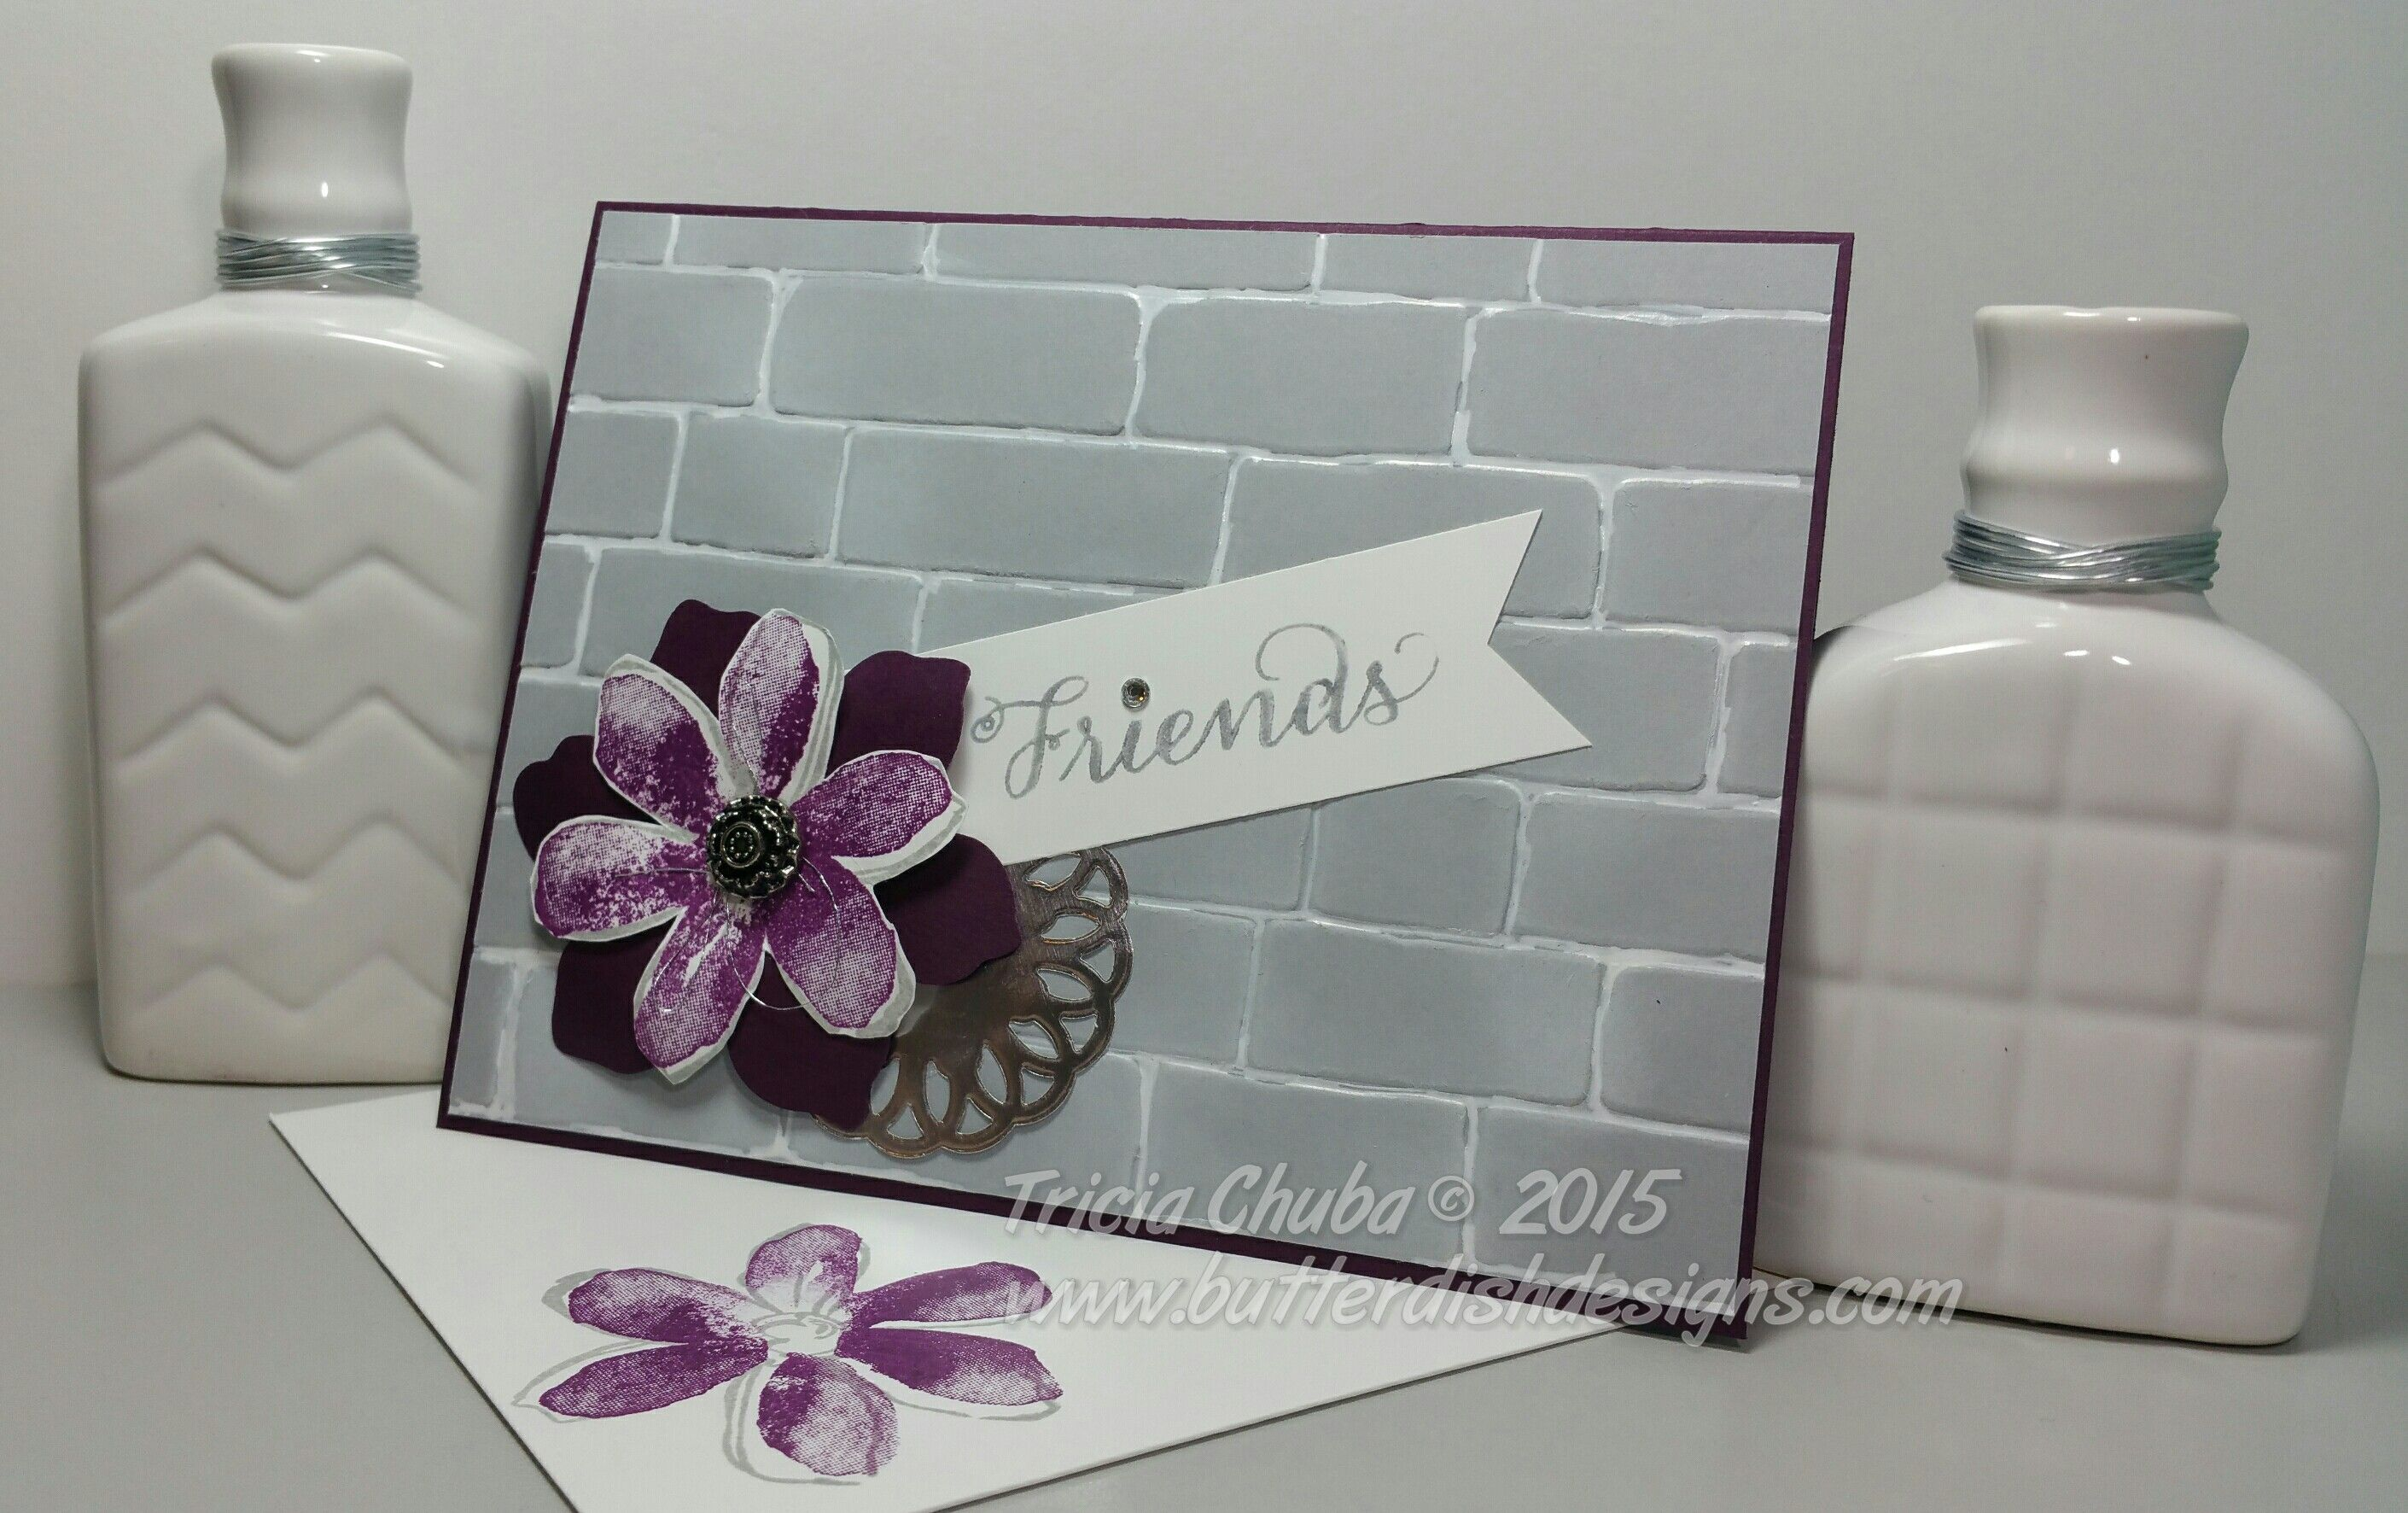 Blackberry Bliss Friends - Tip: Use a white gel pen to create mortar lines which adds depth and interest to this new embossing folder.  ButterDish Designs, Stampin'Up!, Garden in Bloom, Brick Wall Embossing Folder